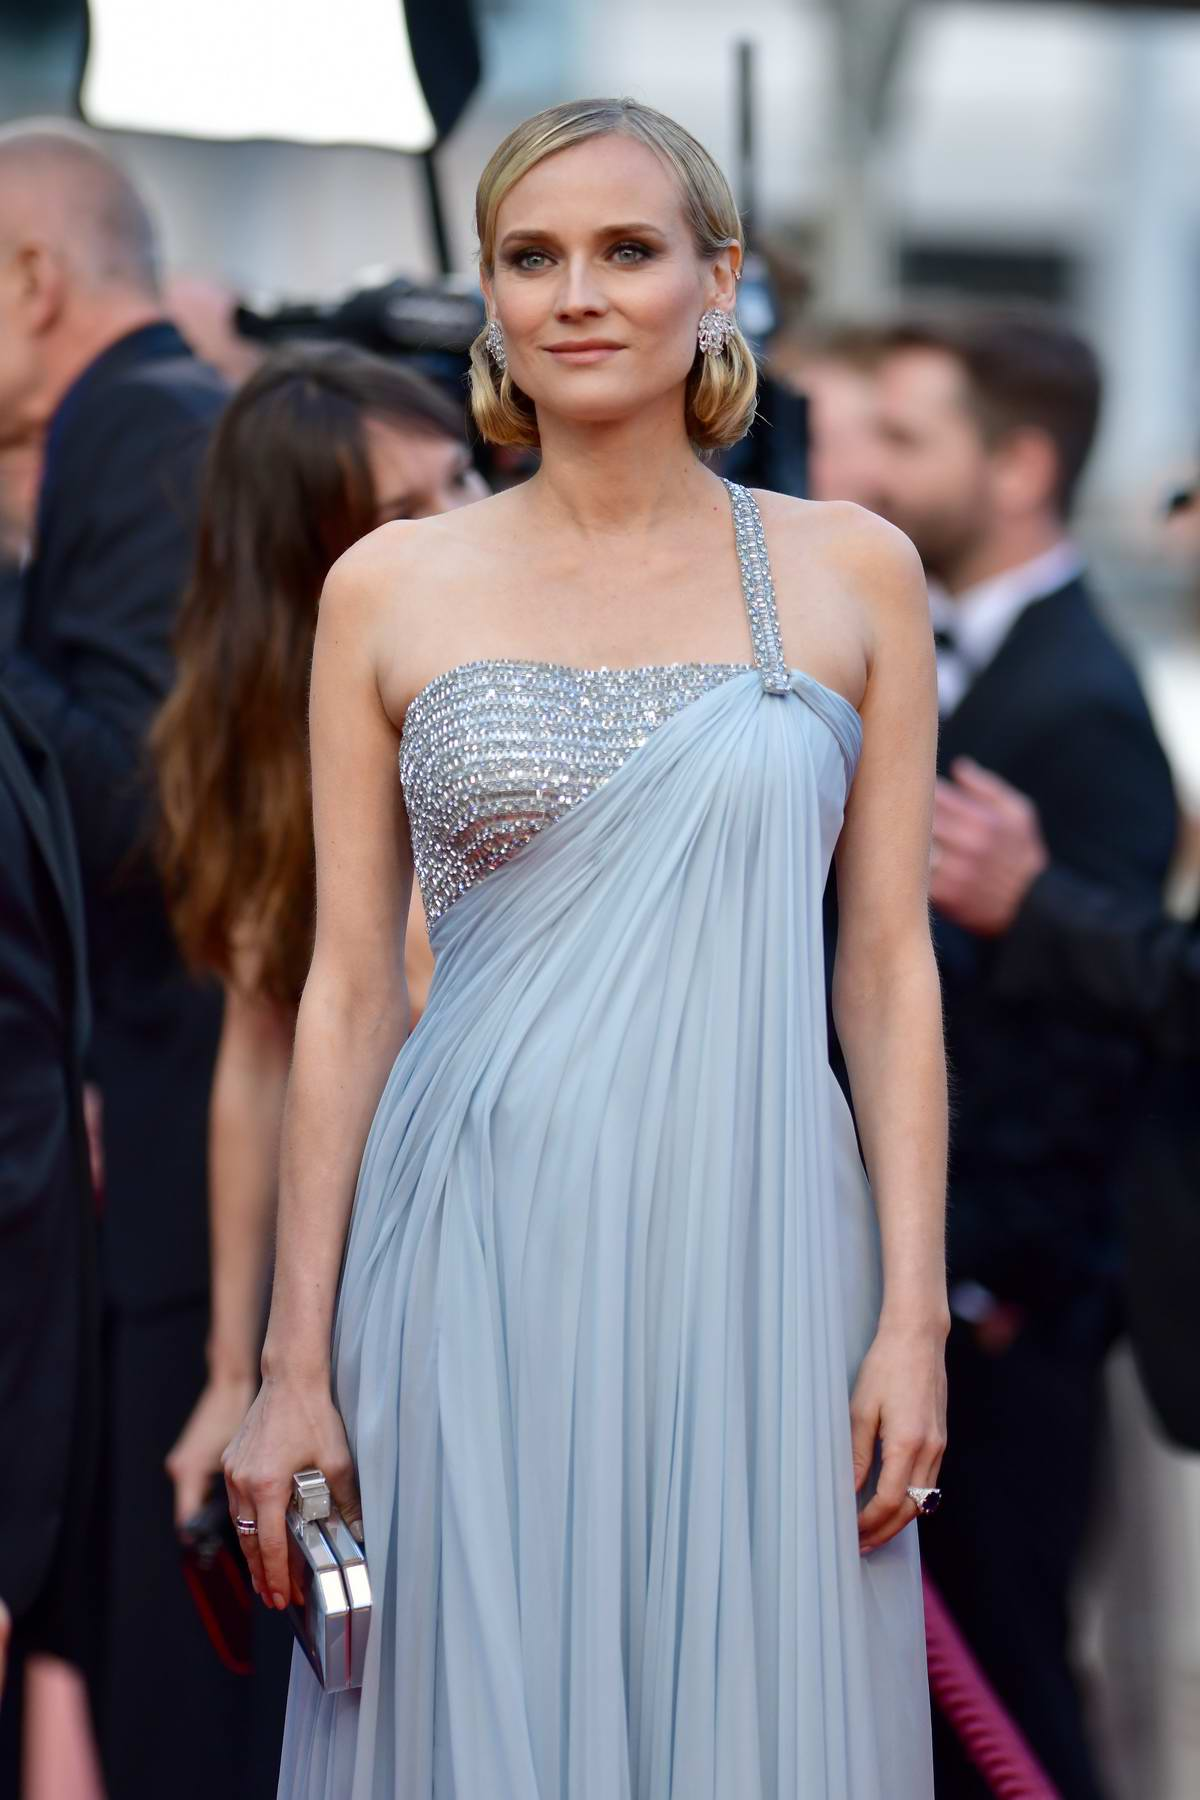 Diane Kruger attends the 'Sink Or Swim' screening during the 71st Cannes Film Festival in Cannes, France